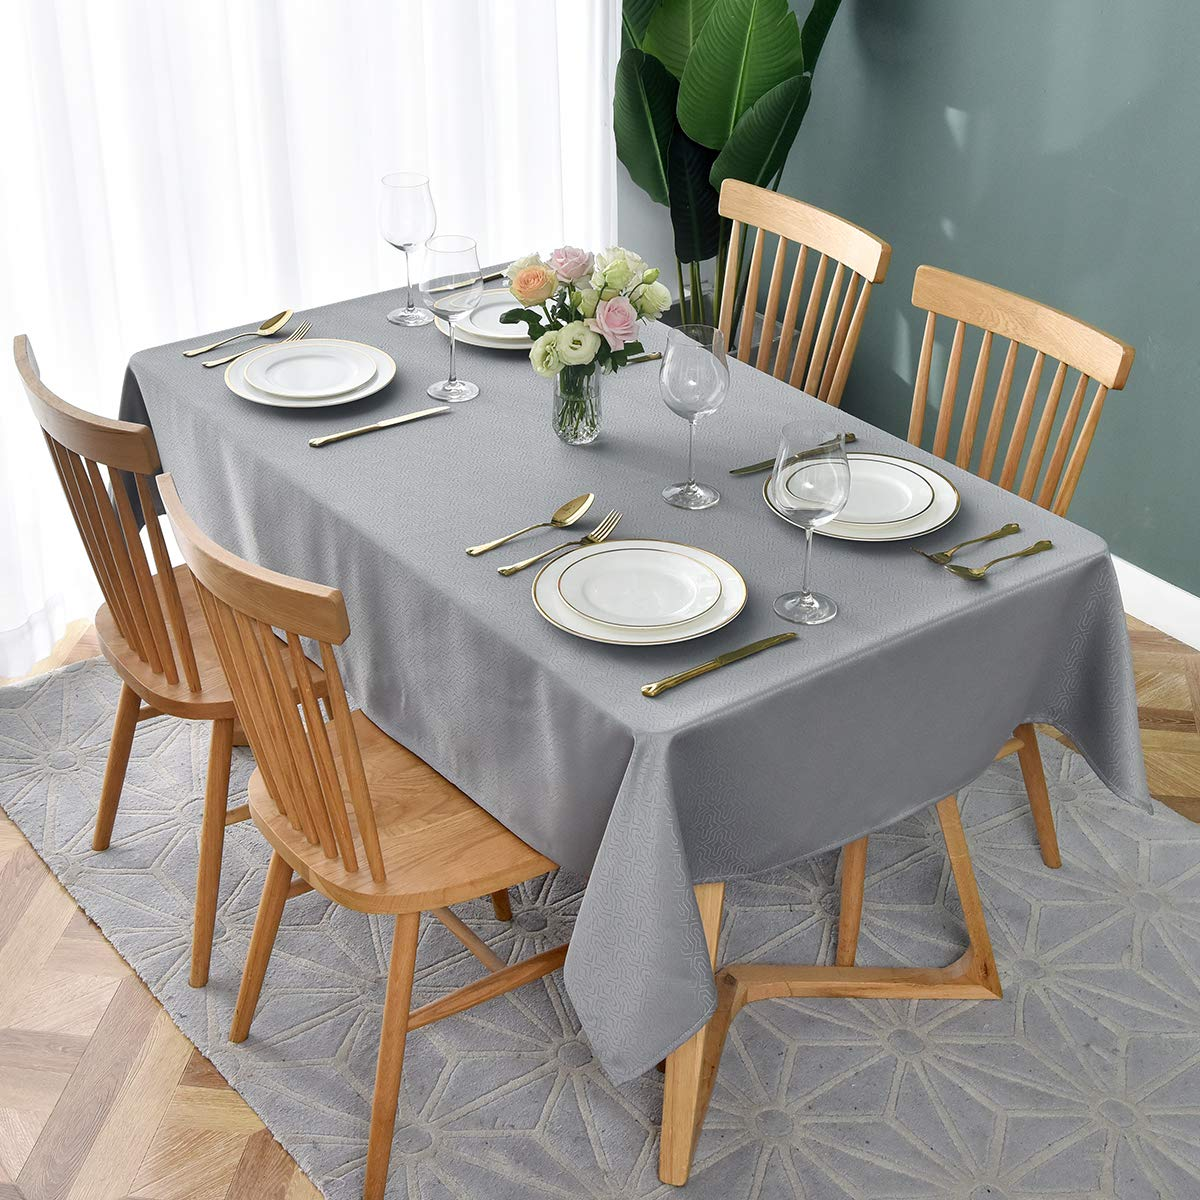 maxmill Jacquard Tablecloth Geometric Design Water Resistance Antiwrinkle Oil Proof Heavy Weight Soft Table Cloth for Buffet Banquet Parties Event Holiday Dinner Rectangle 60 x 84 Inch Silver Grey